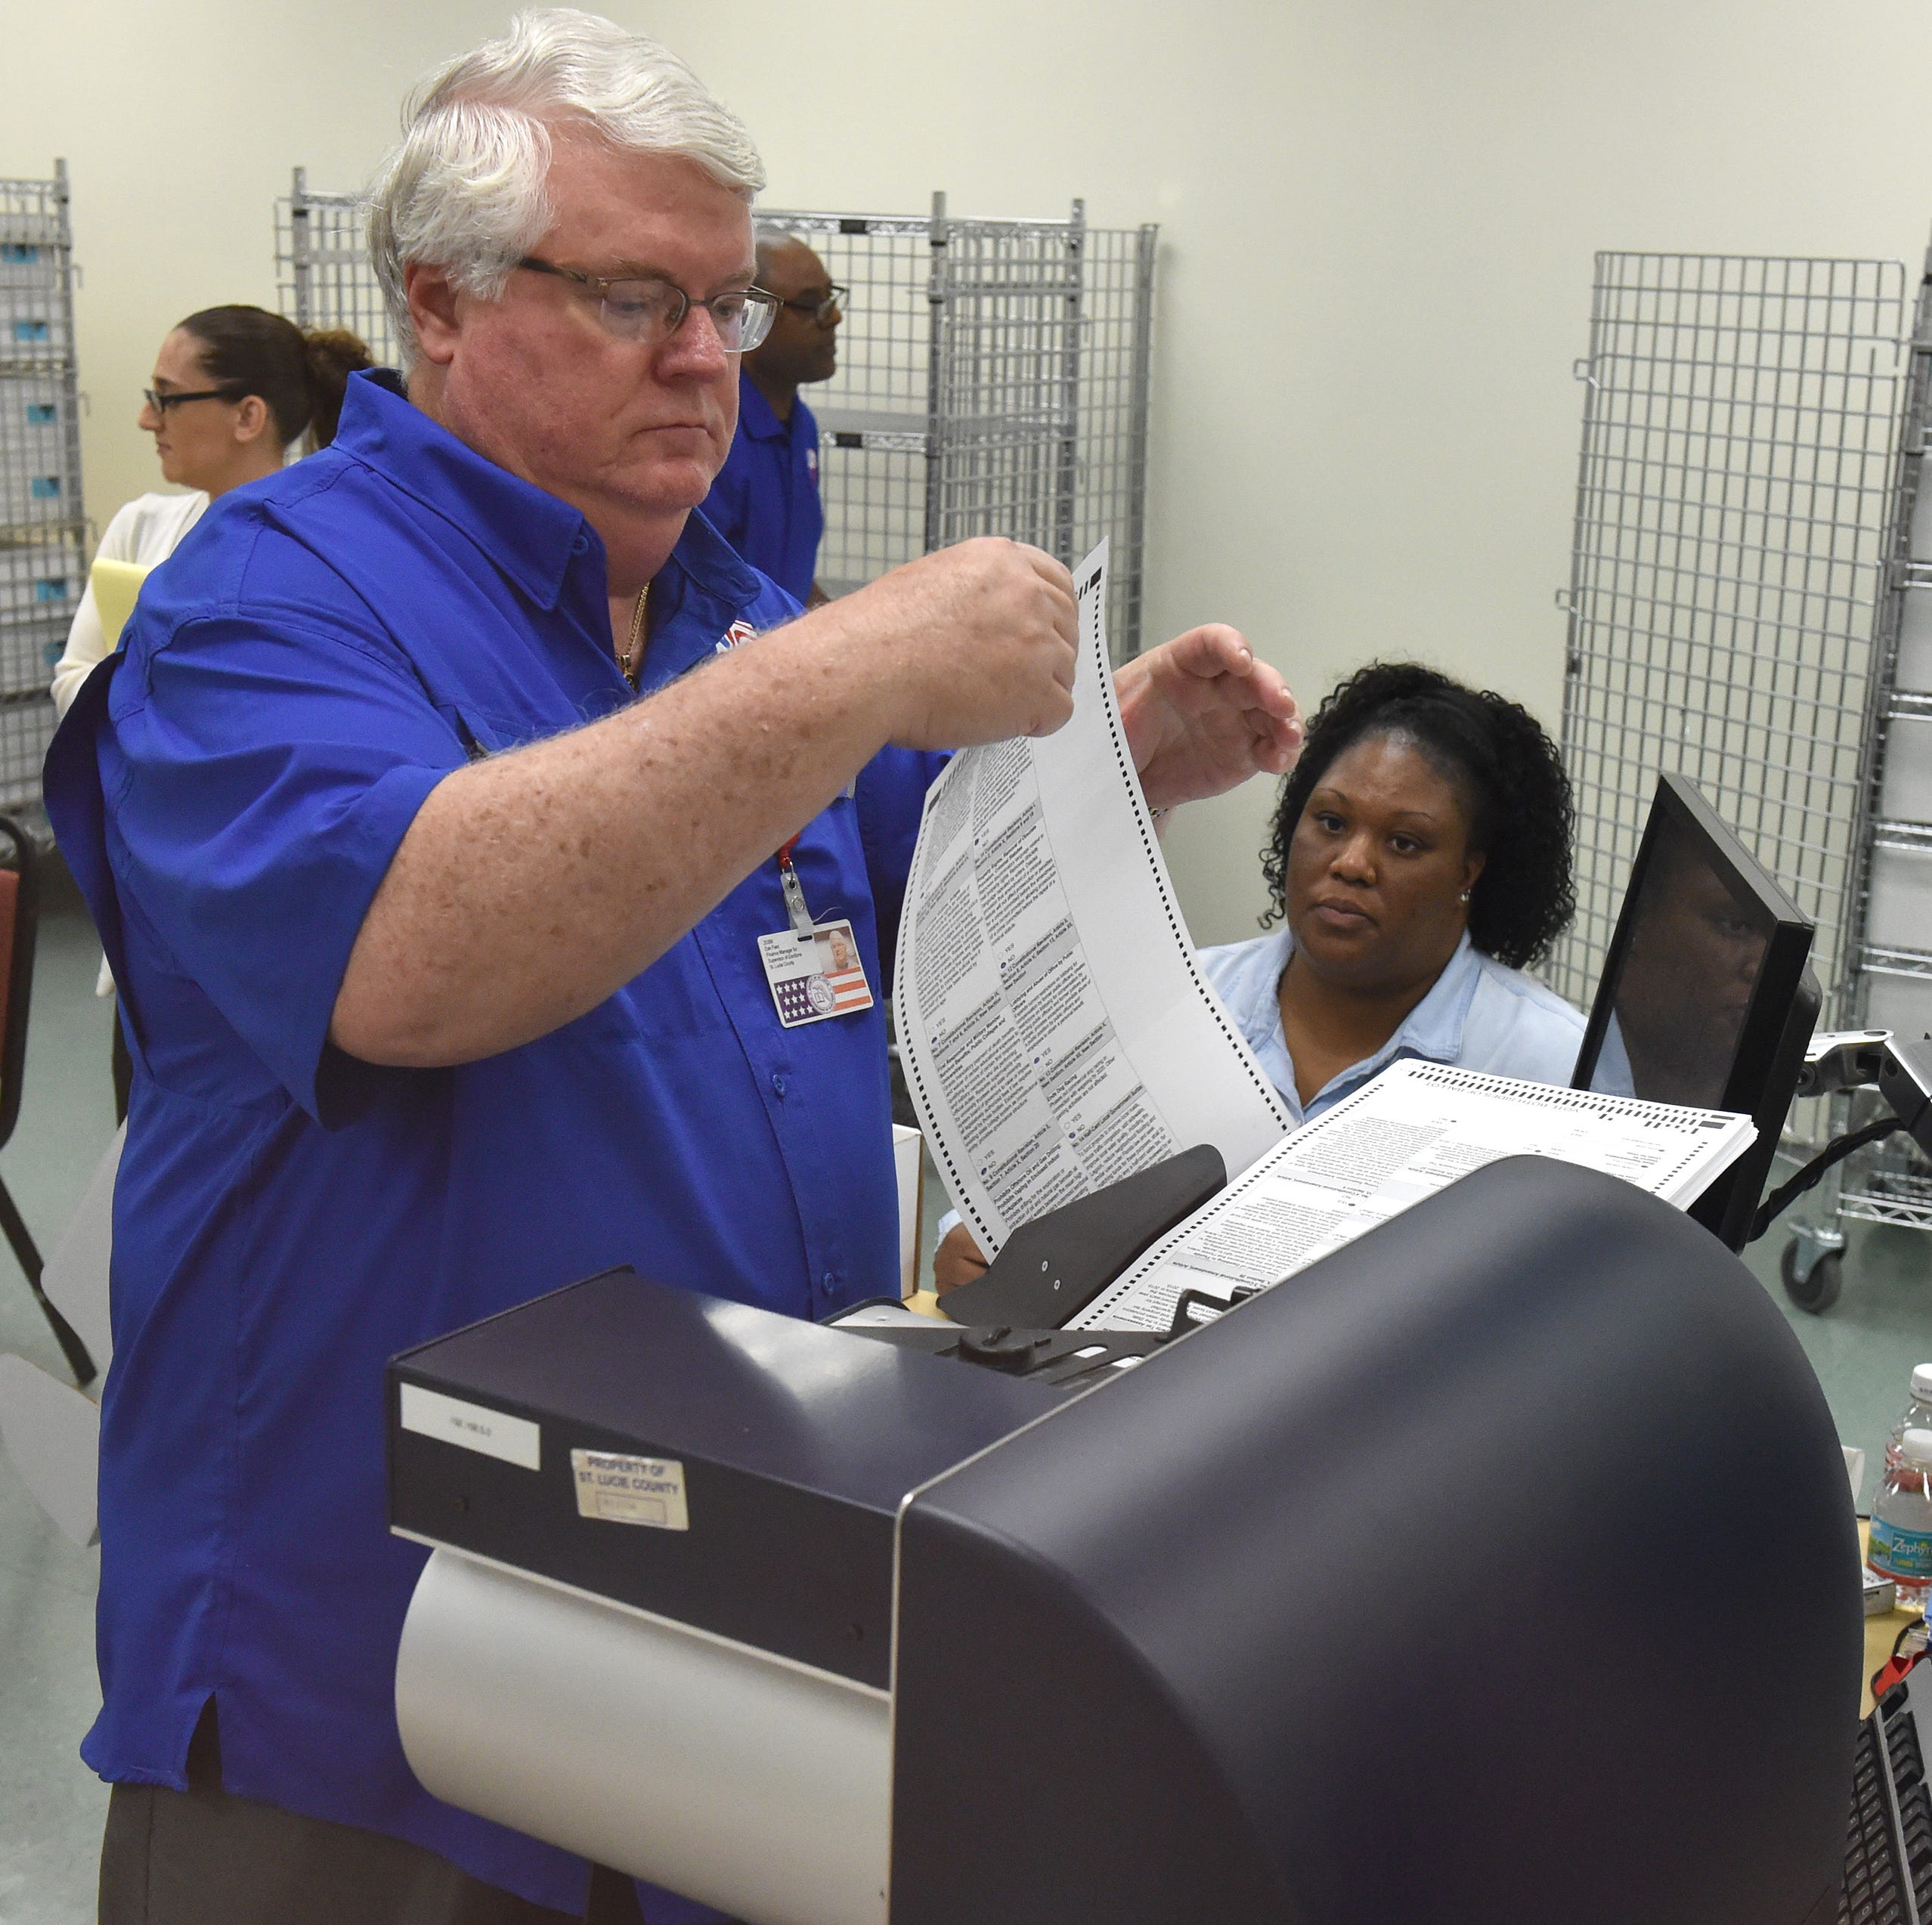 President of election supervisors: Palm Beach recount timeline 'a physical impossibility'